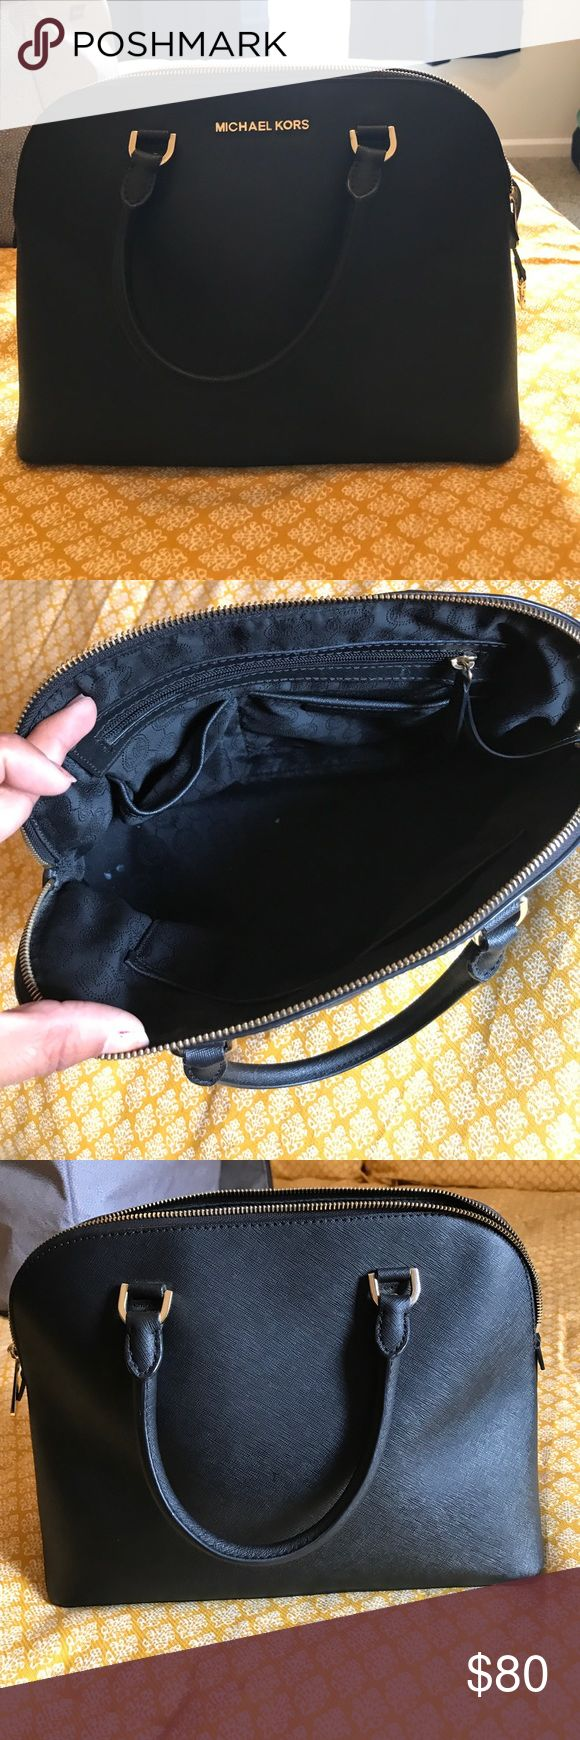 Michael Kors bag Michael Kors tote bag, excellent used condition. Slight wear at bottom of bag, pictured. LOVE this bag, sad to part with it. Michael Kors Bags Totes